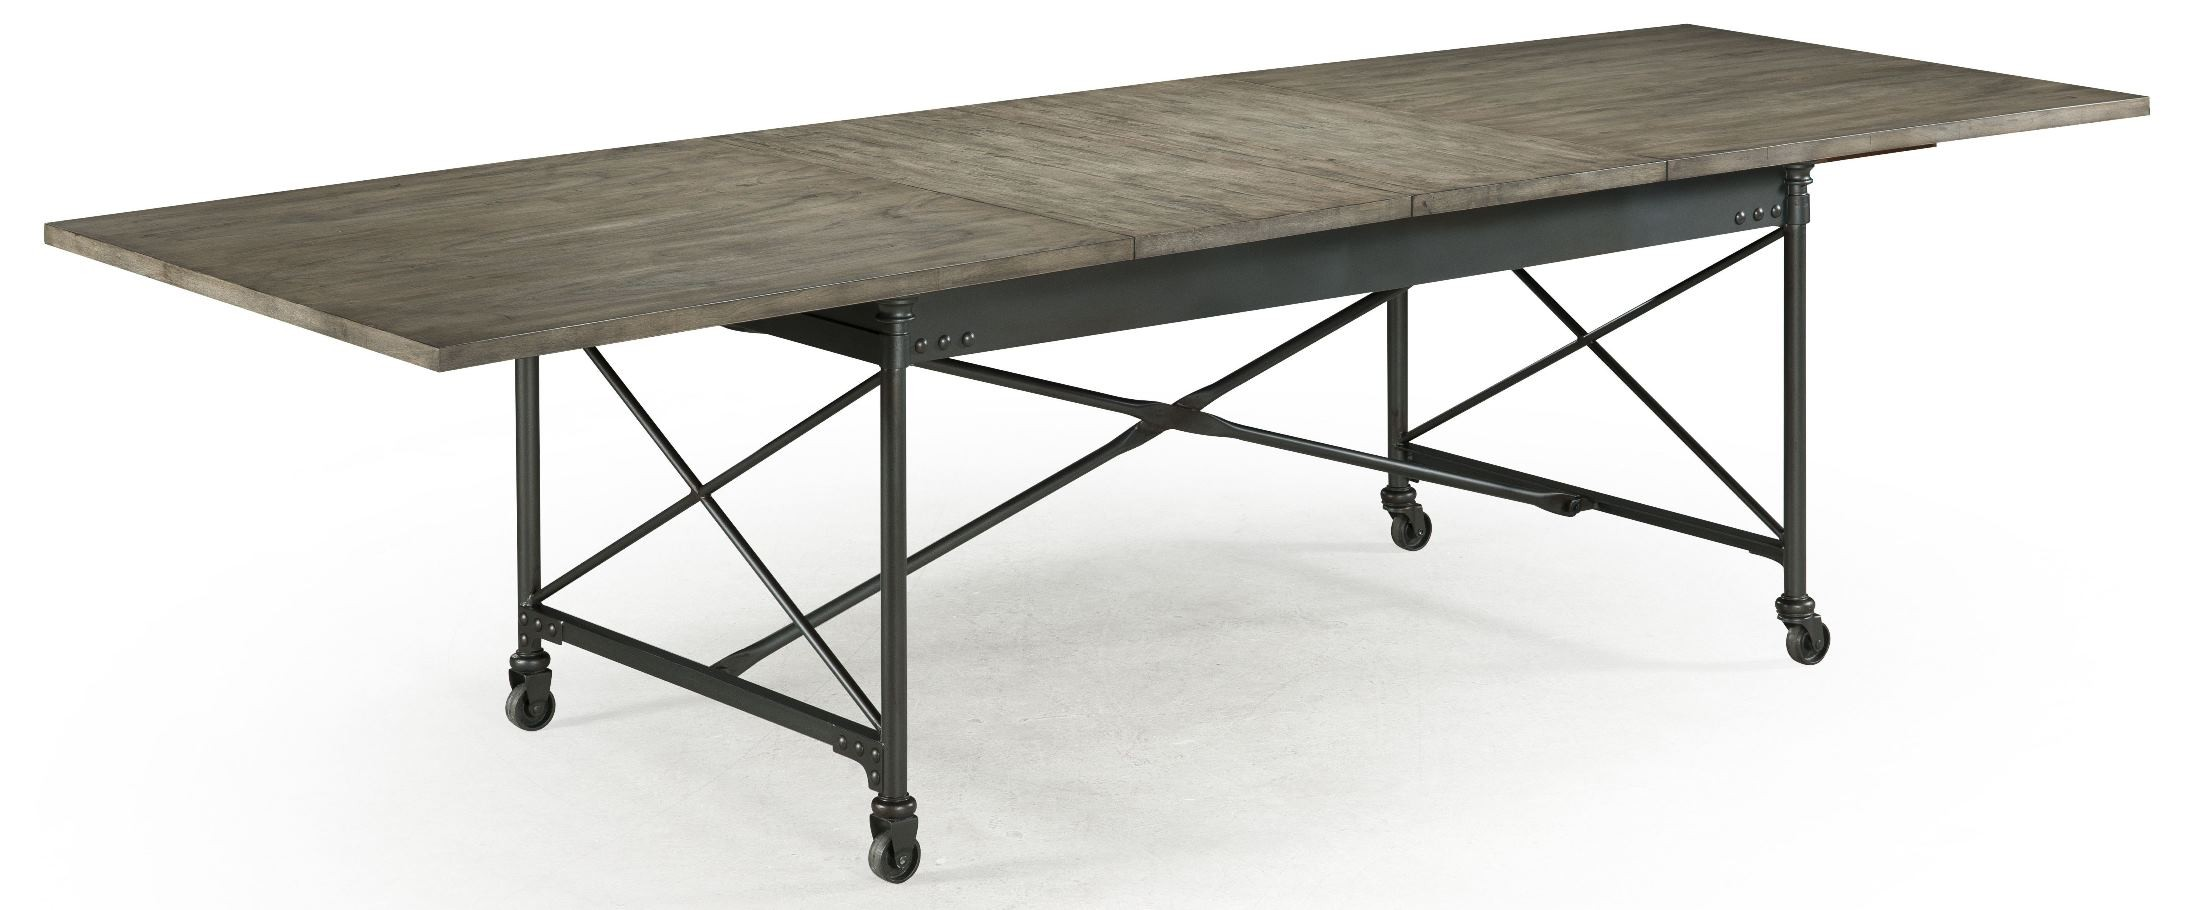 Walton Rectangular Dining Table With Casters From